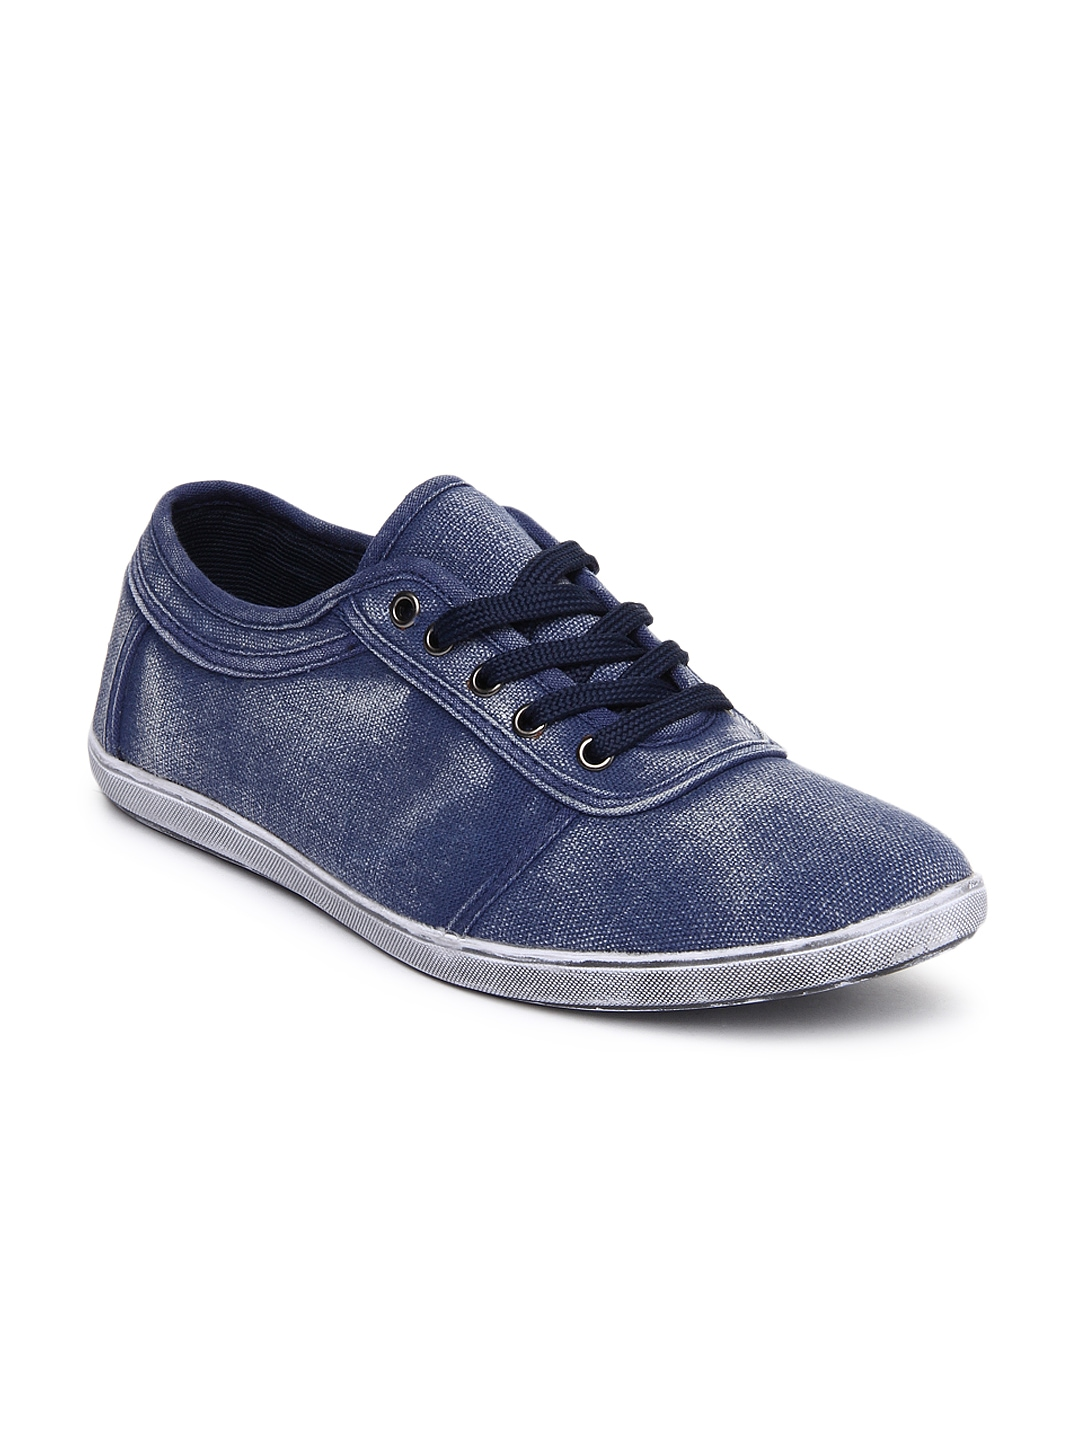 myntra inmark blue casual shoes 645699 buy myntra